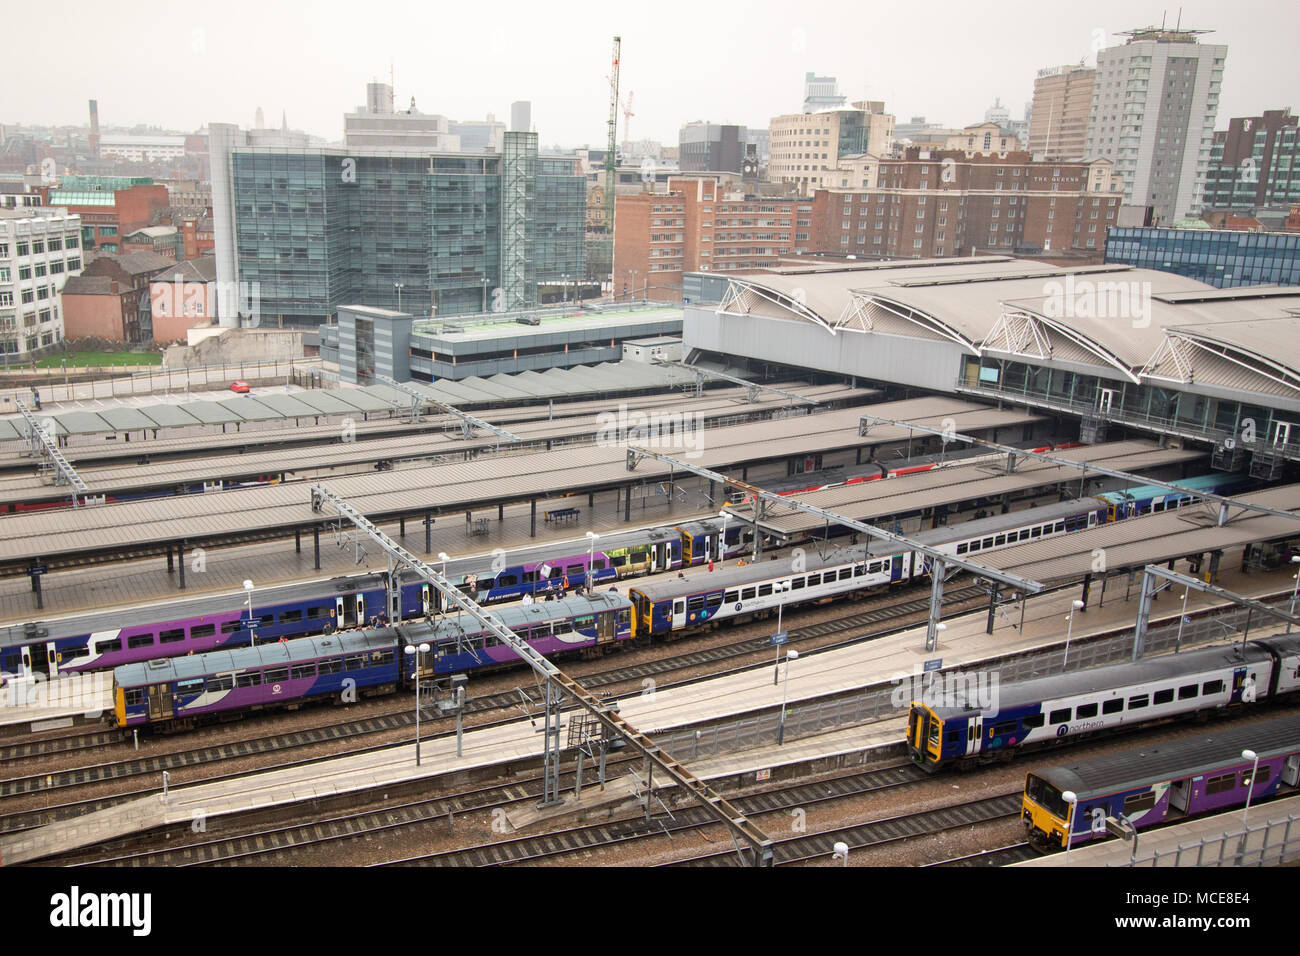 Leeds Central railway station seen from the top of the nearby Hilton Double Tree Hotel in the city centre. - Stock Image